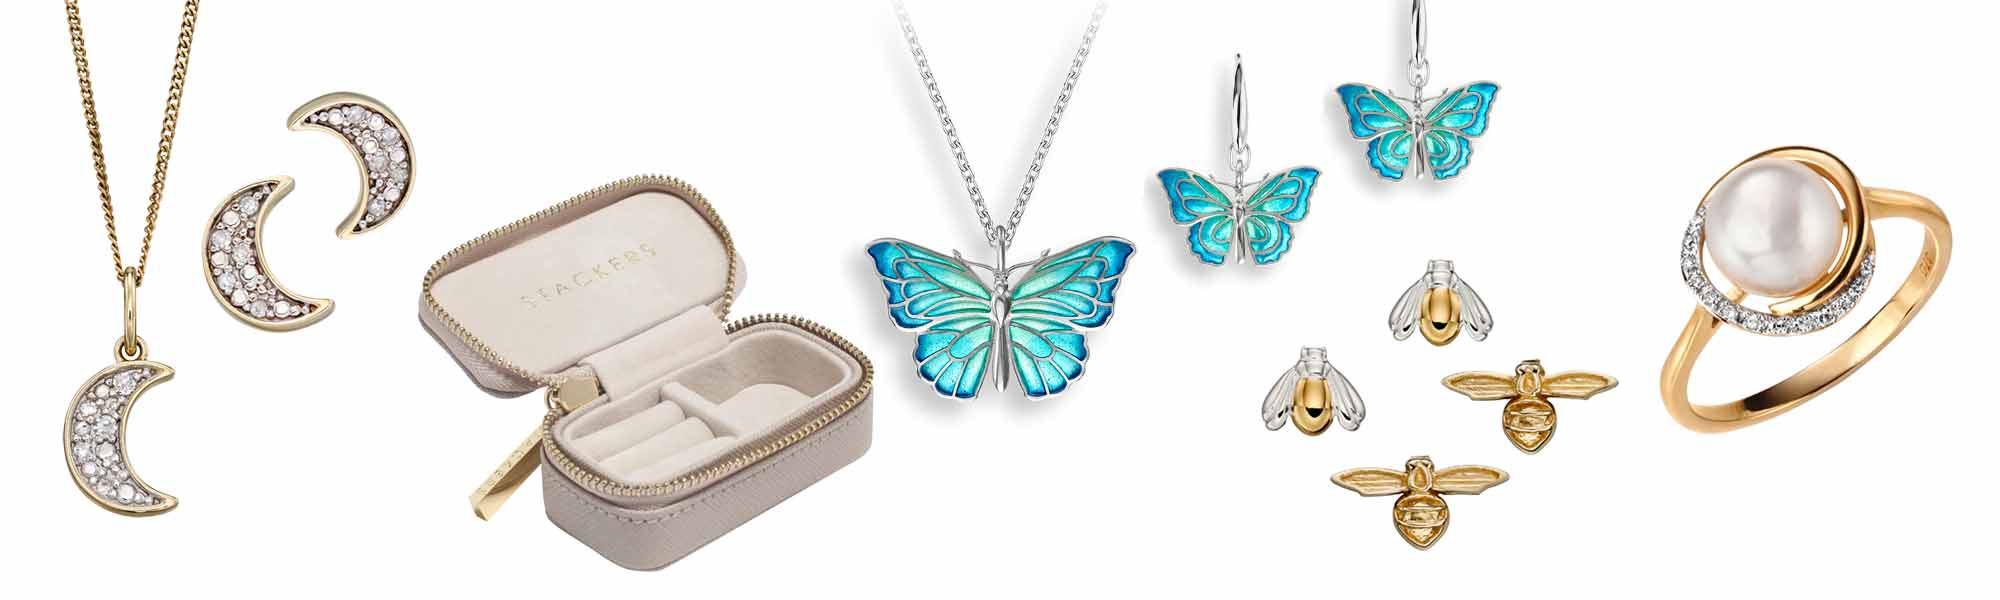 November 2020 Christmas gift Ideas from Sally Thorntons jewellery Blog at AA Thornton Jeweller Kettering Northampton